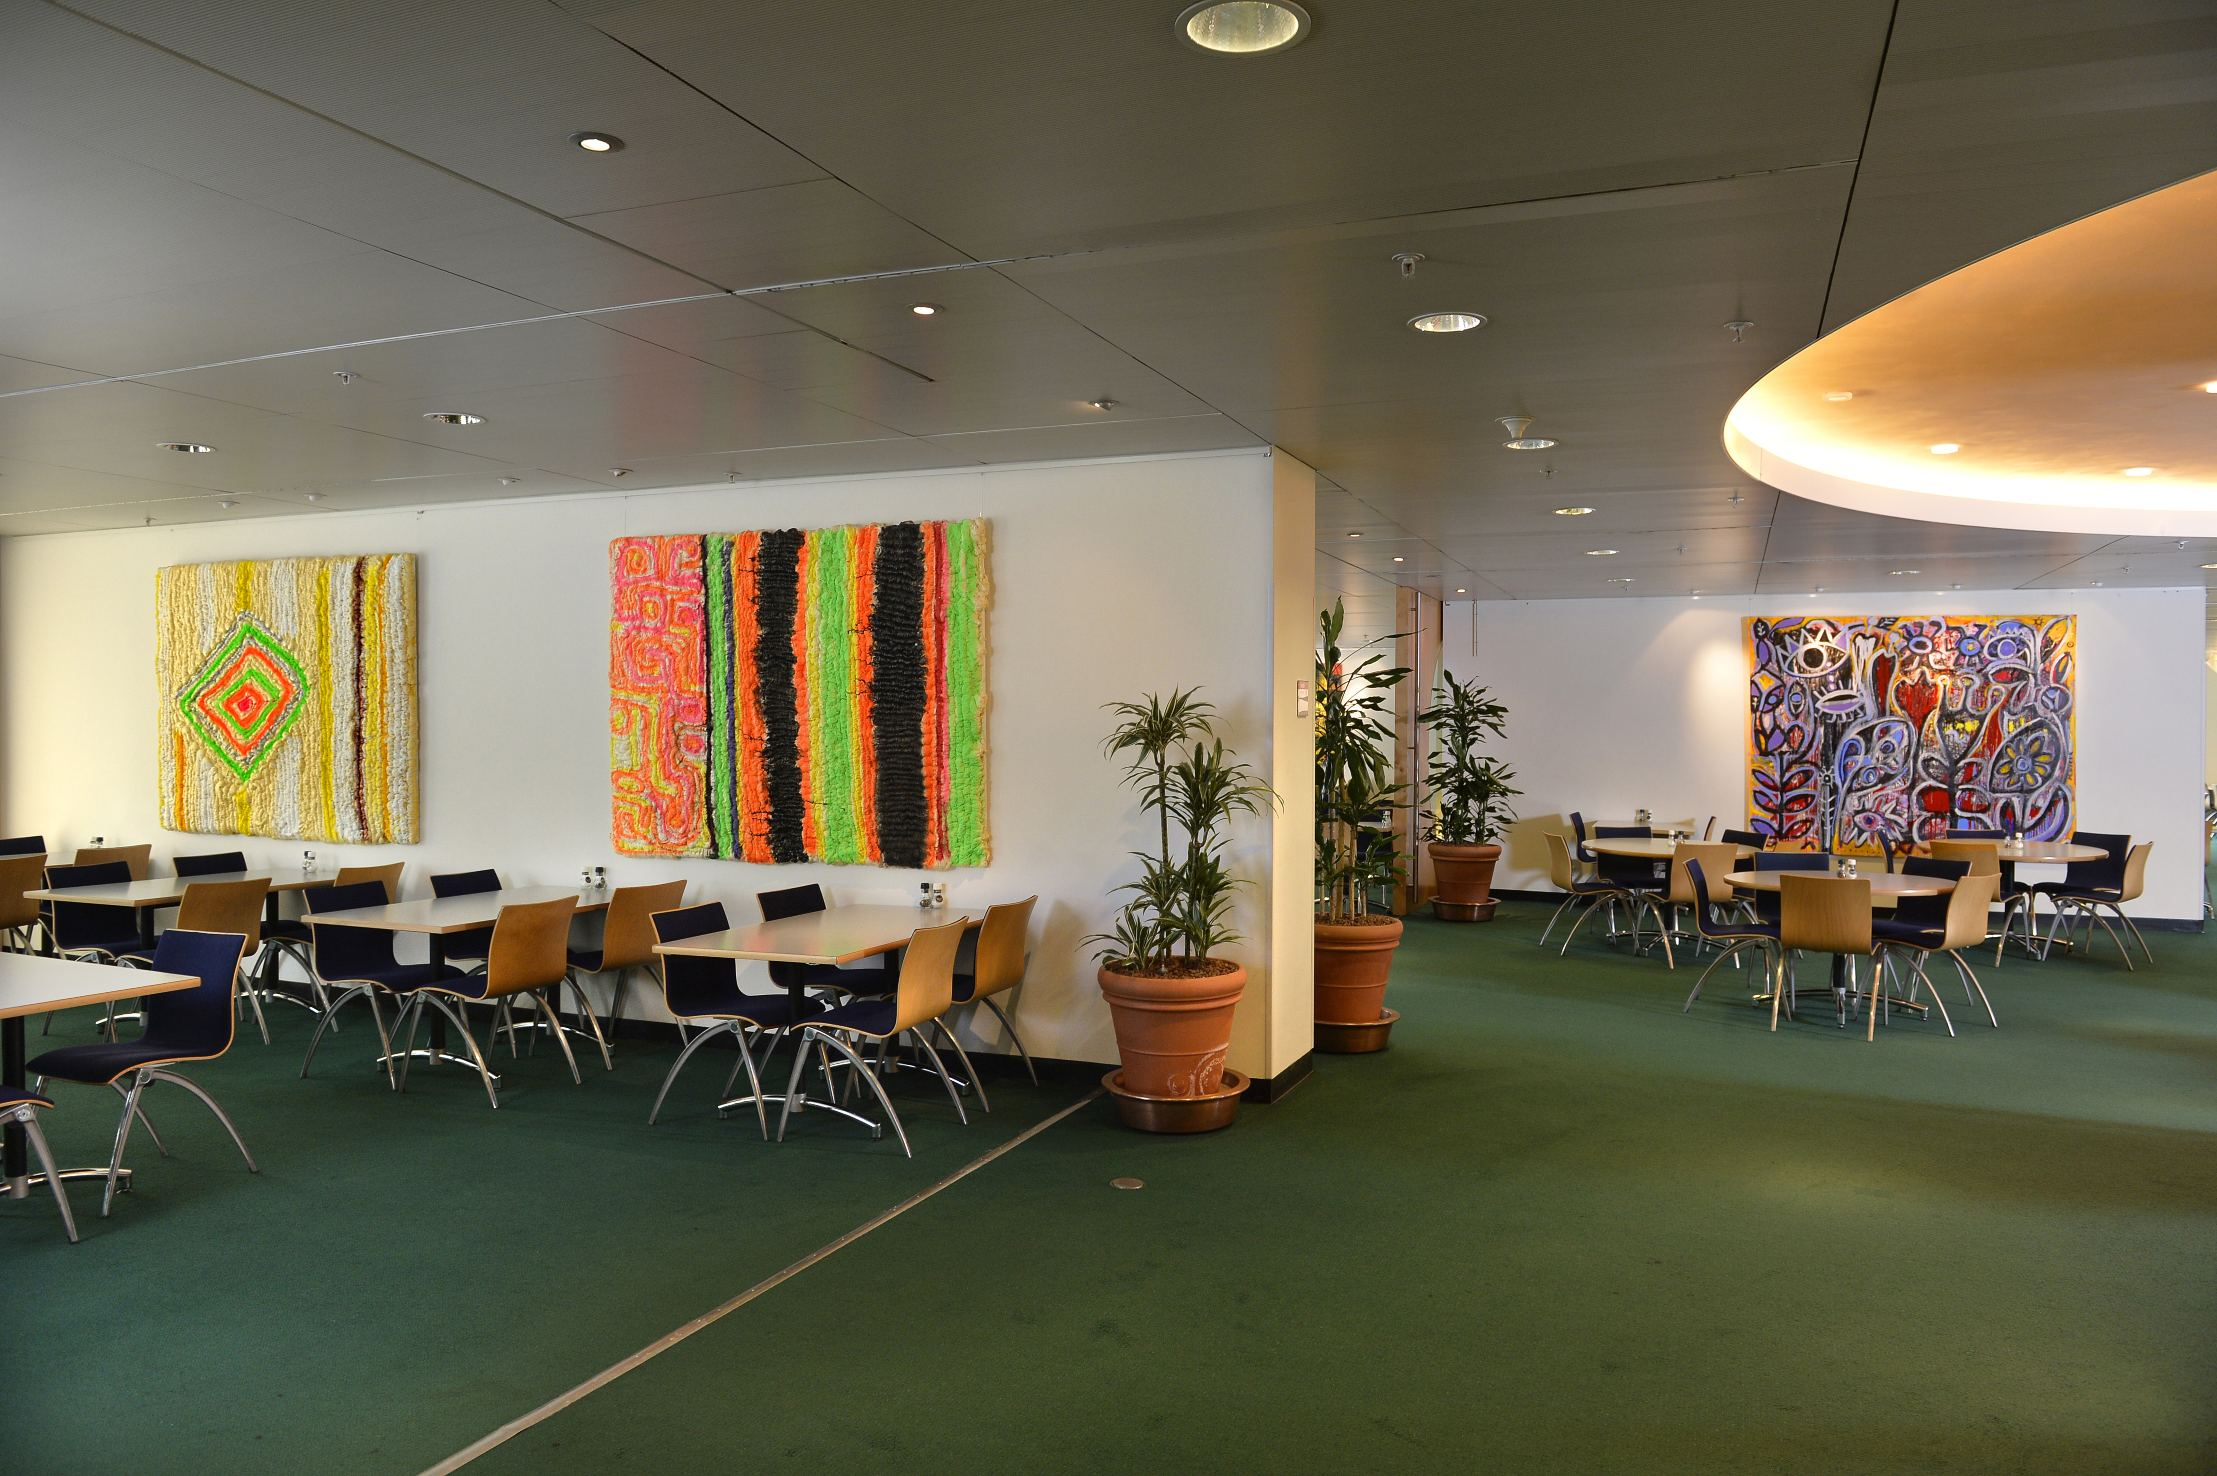 Exhibition at Shell Headquarters, The Hague, The Netherlands